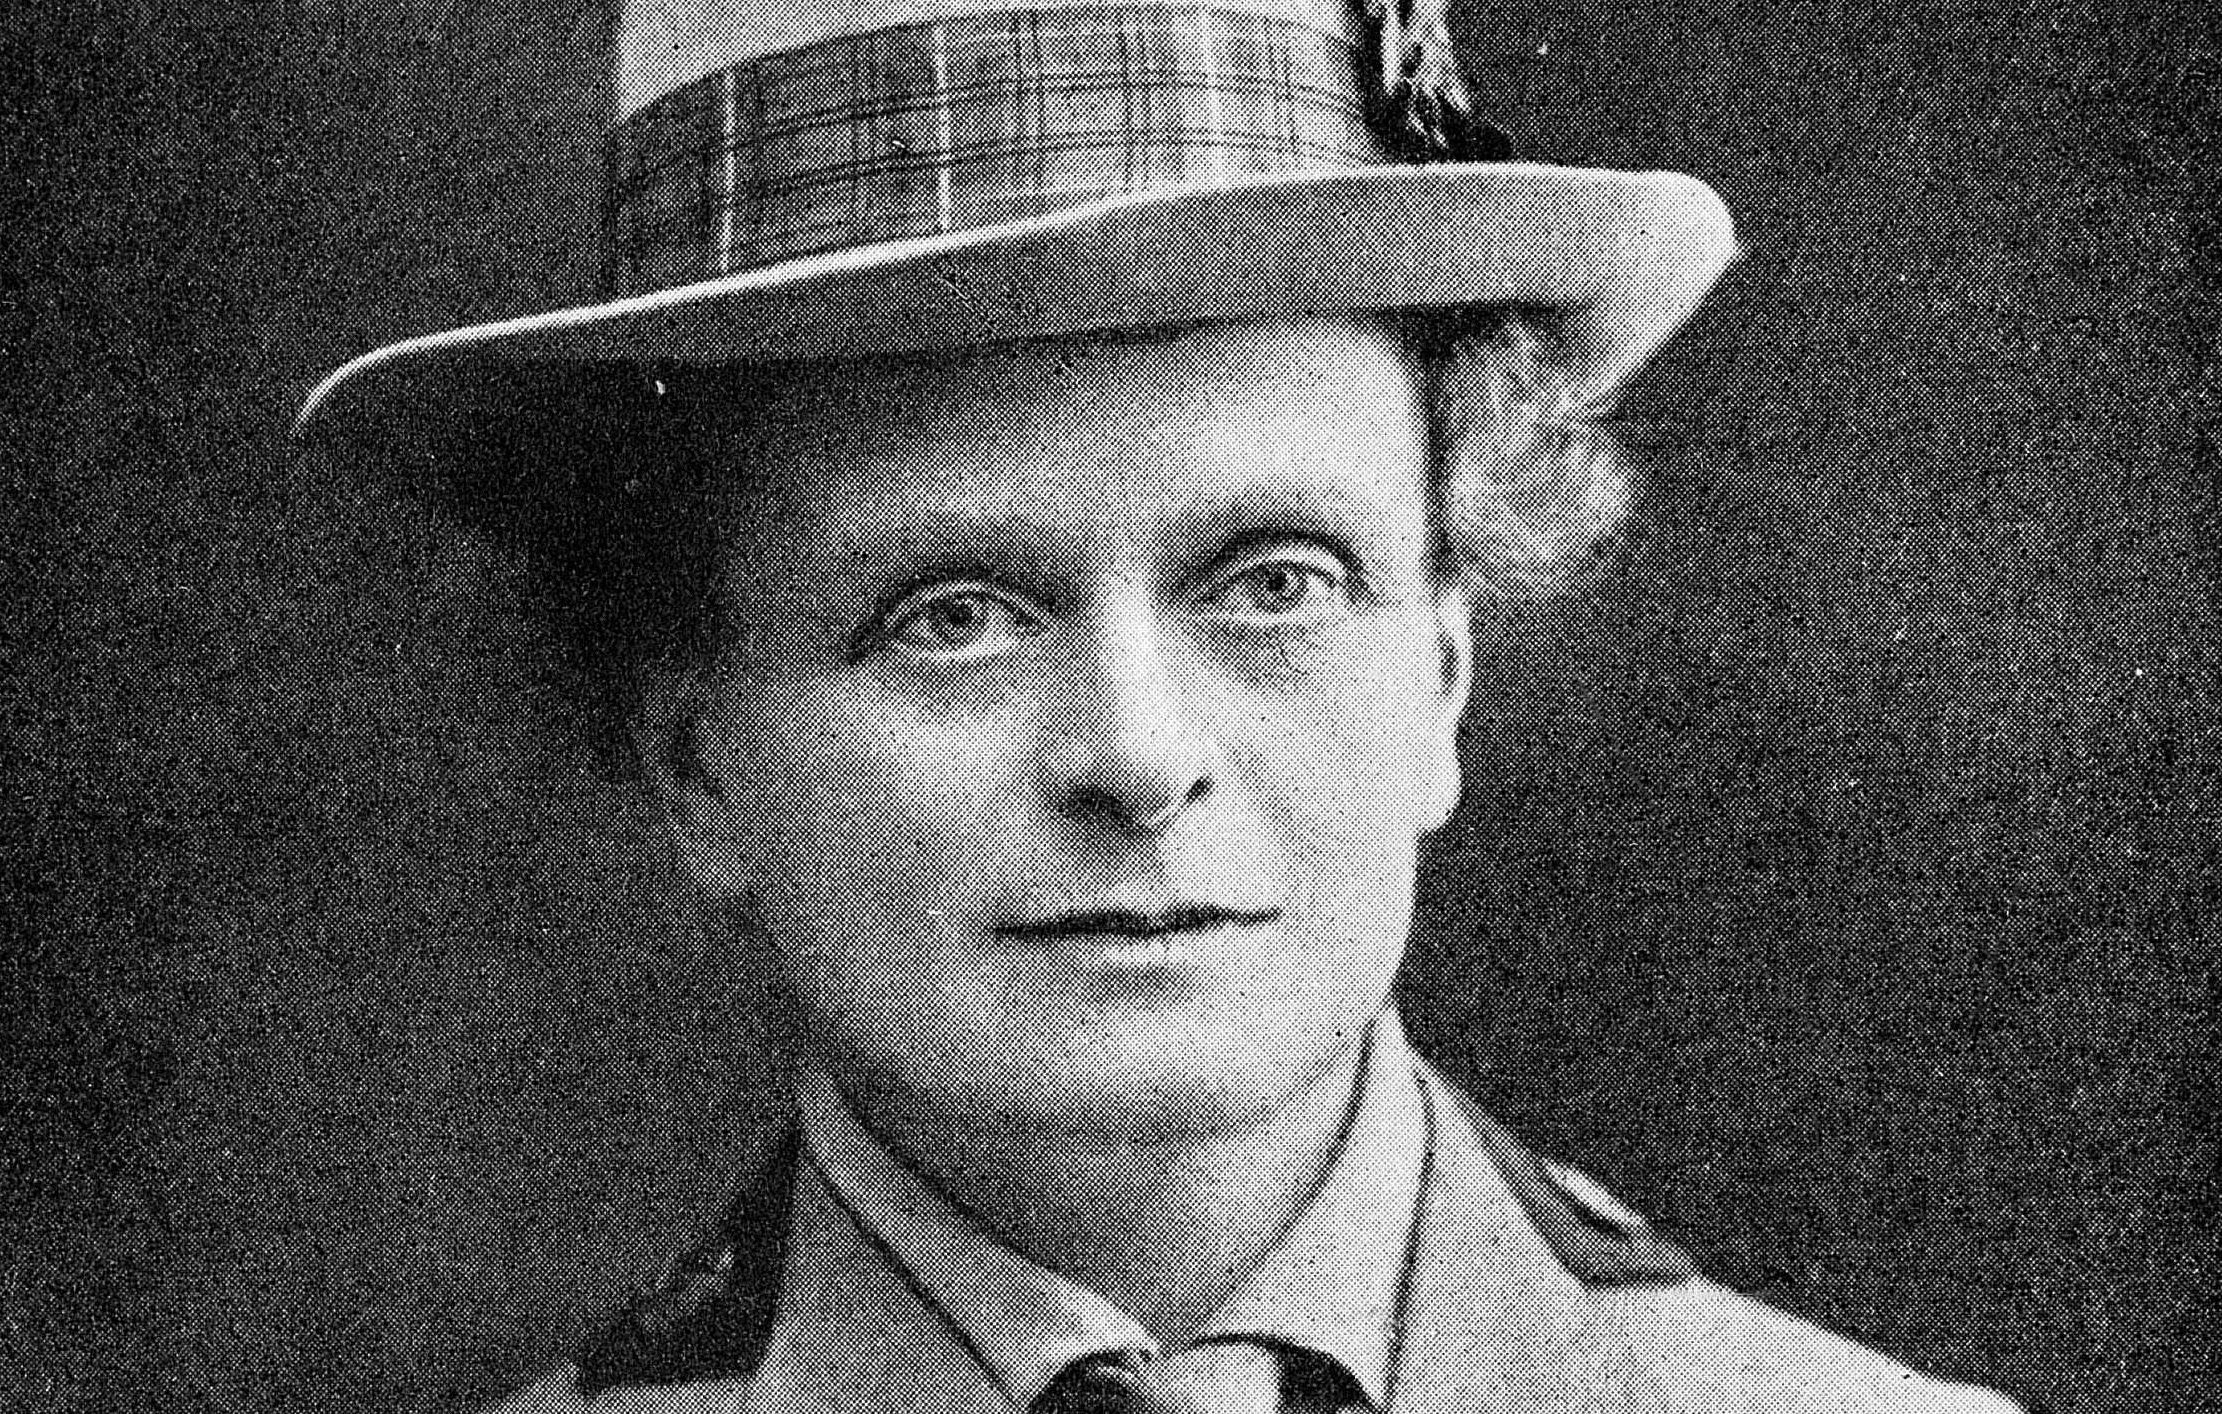 Edinburgh-born suffragette and doctor Elsie Inglis